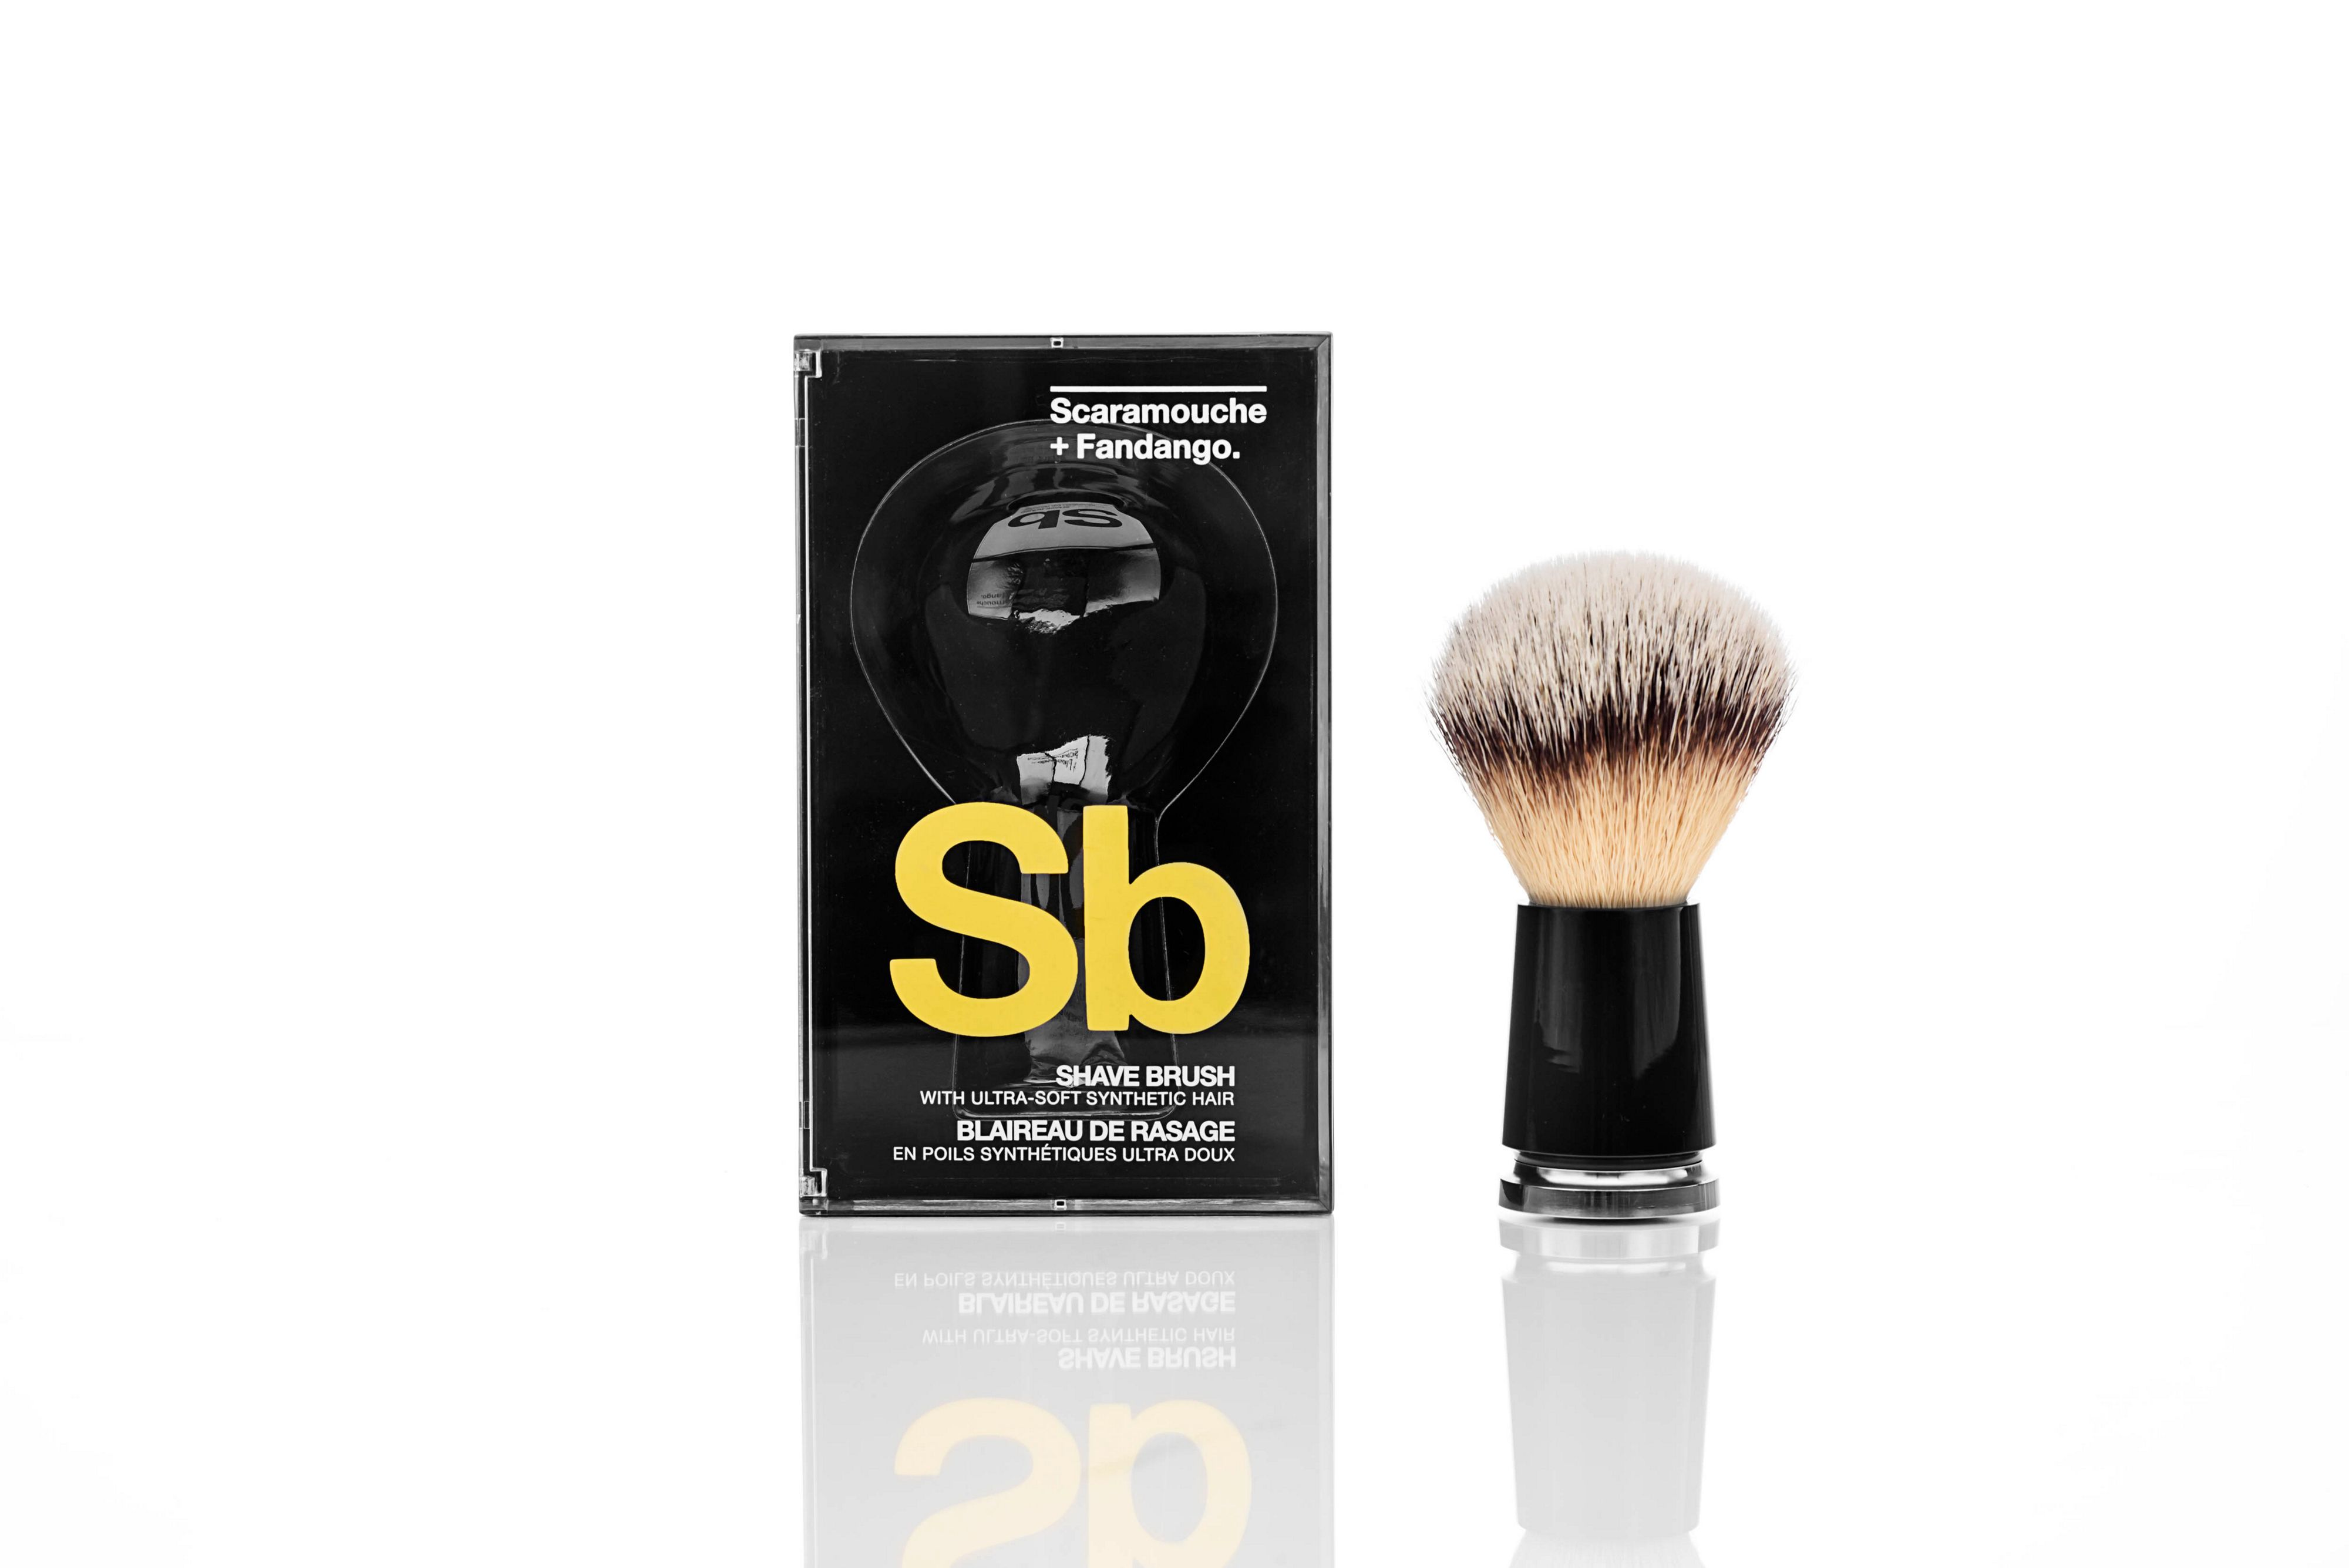 Scaramouche and Fandango Scaramouche and Fandango Shave brush